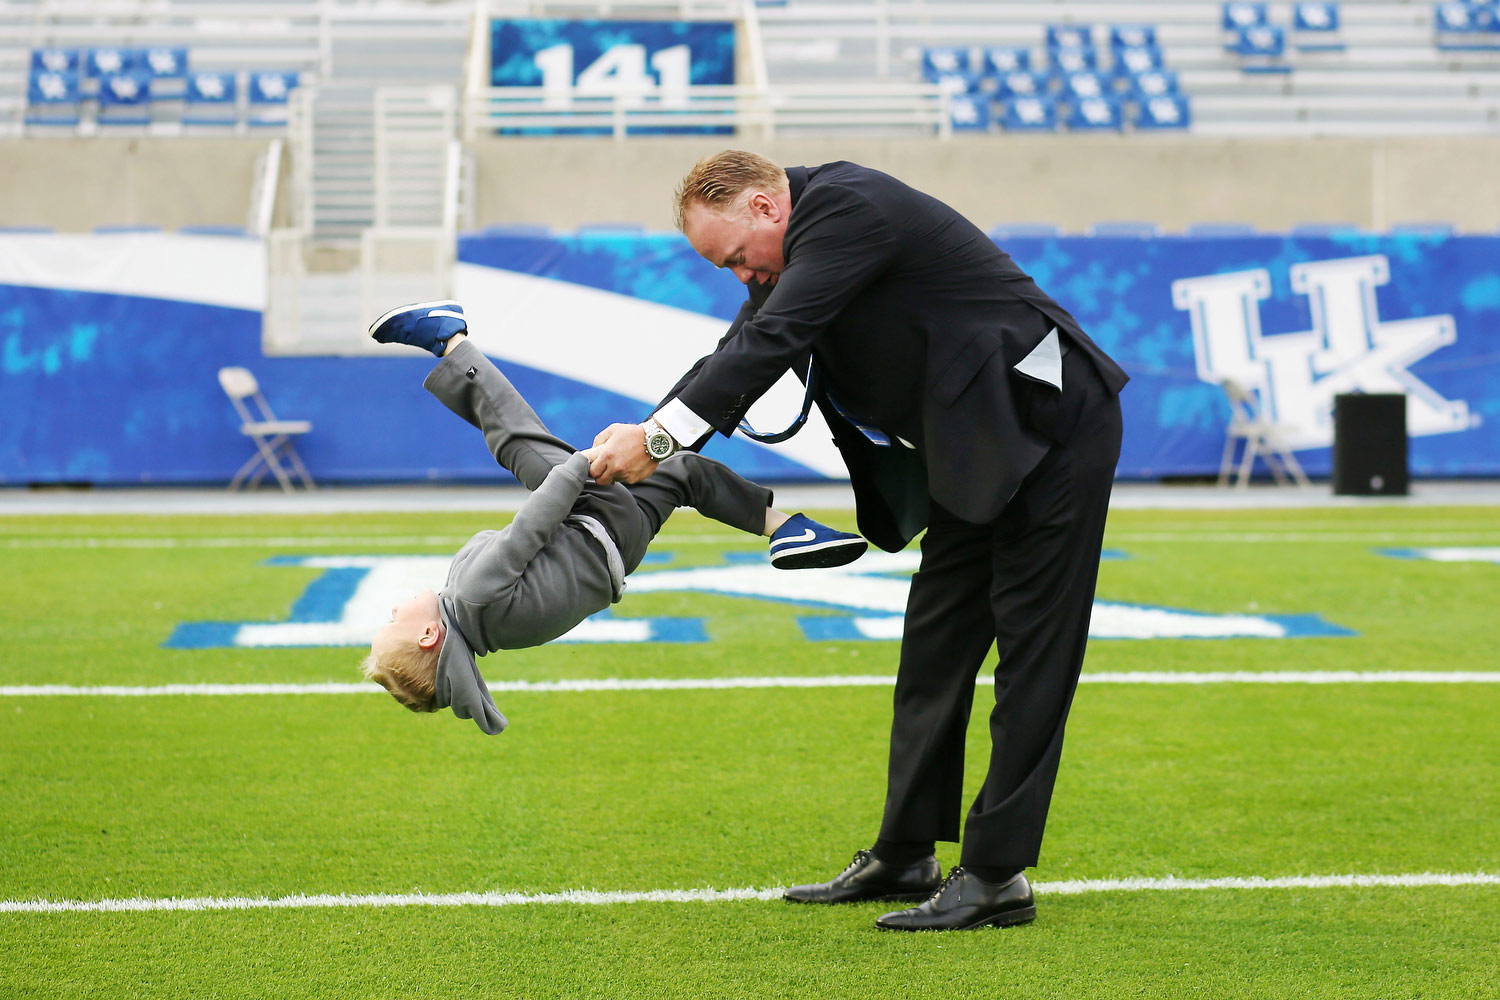 Coach Stoops, wearing a suit, holds his son's hands as his son flips through Coach's arms. His son is upside down, mid-flip, and is wearing a gray sweatshirt gray pants and blue sneakers.